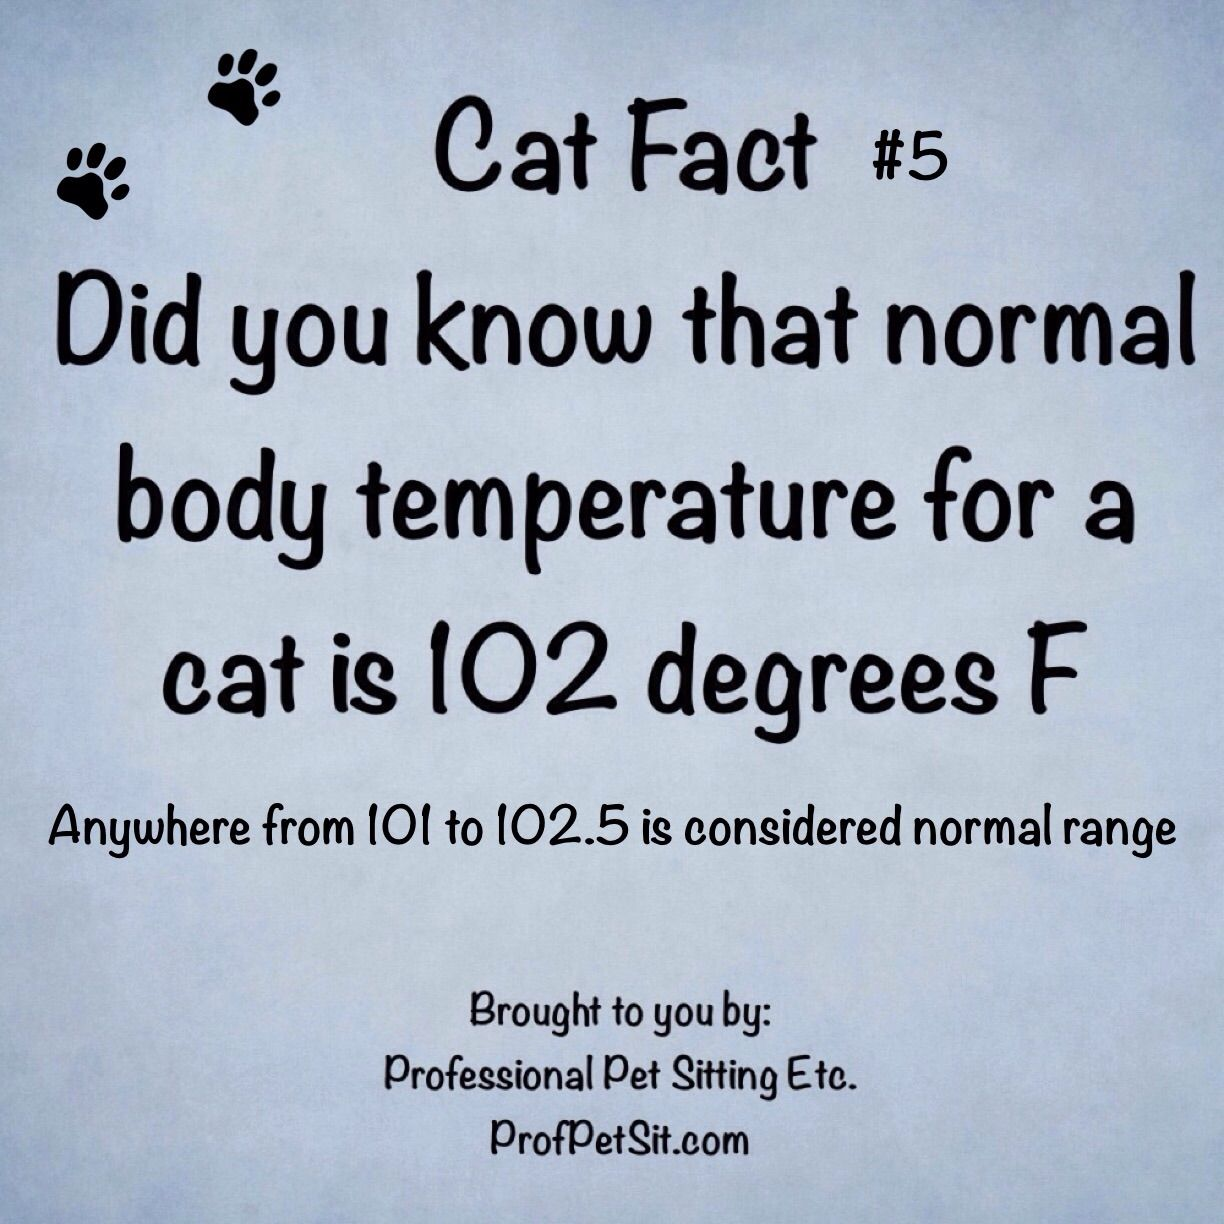 Did you know a normal body temperature for a cat is 102 degrees F